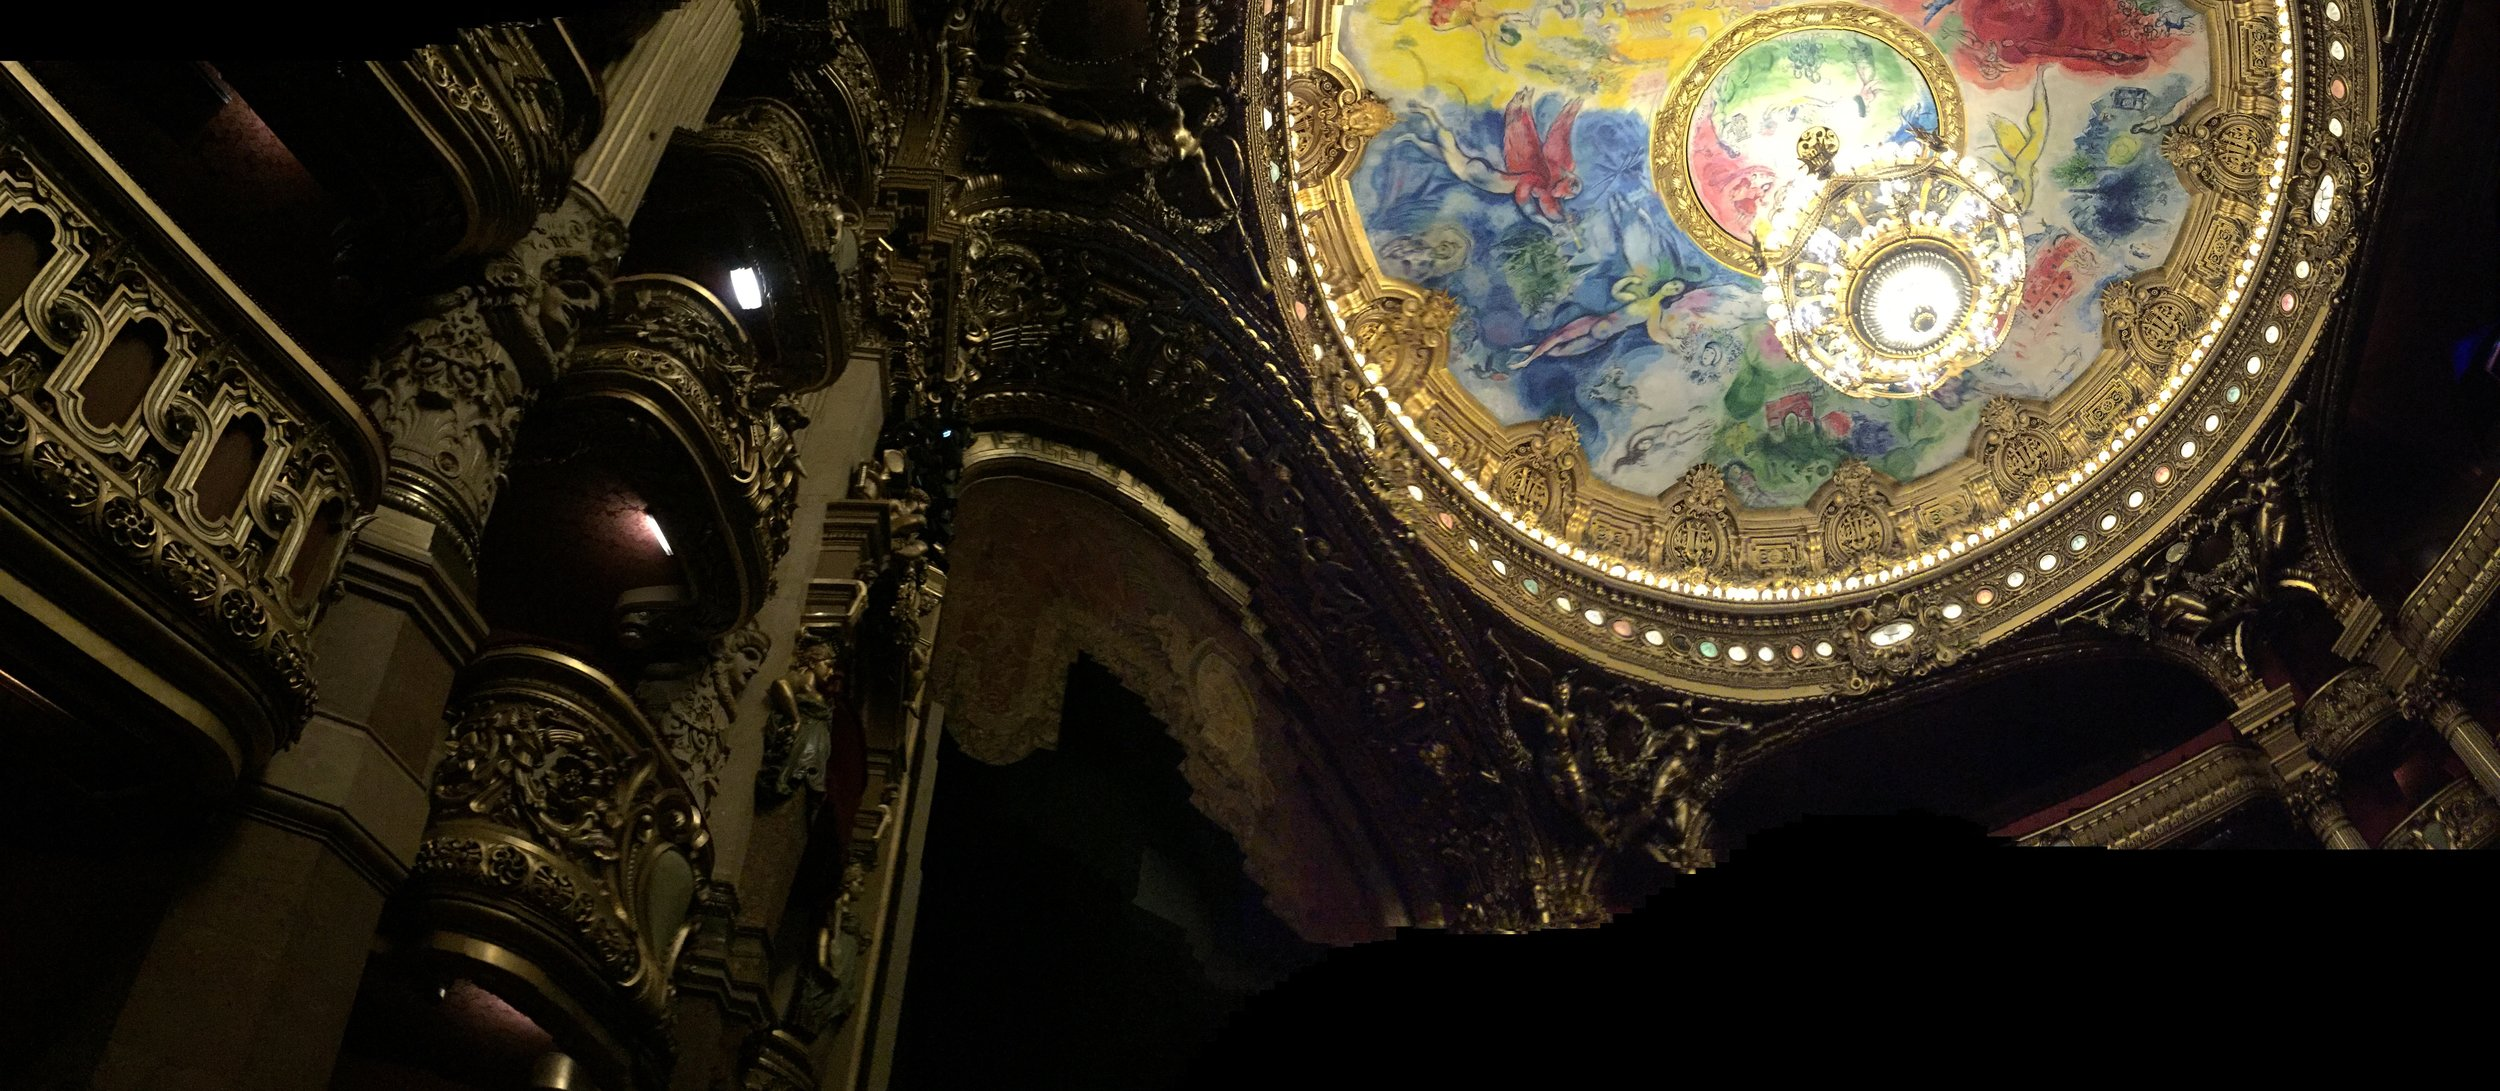 Looking up to see Chagall at the Paris Garnier Opera House.